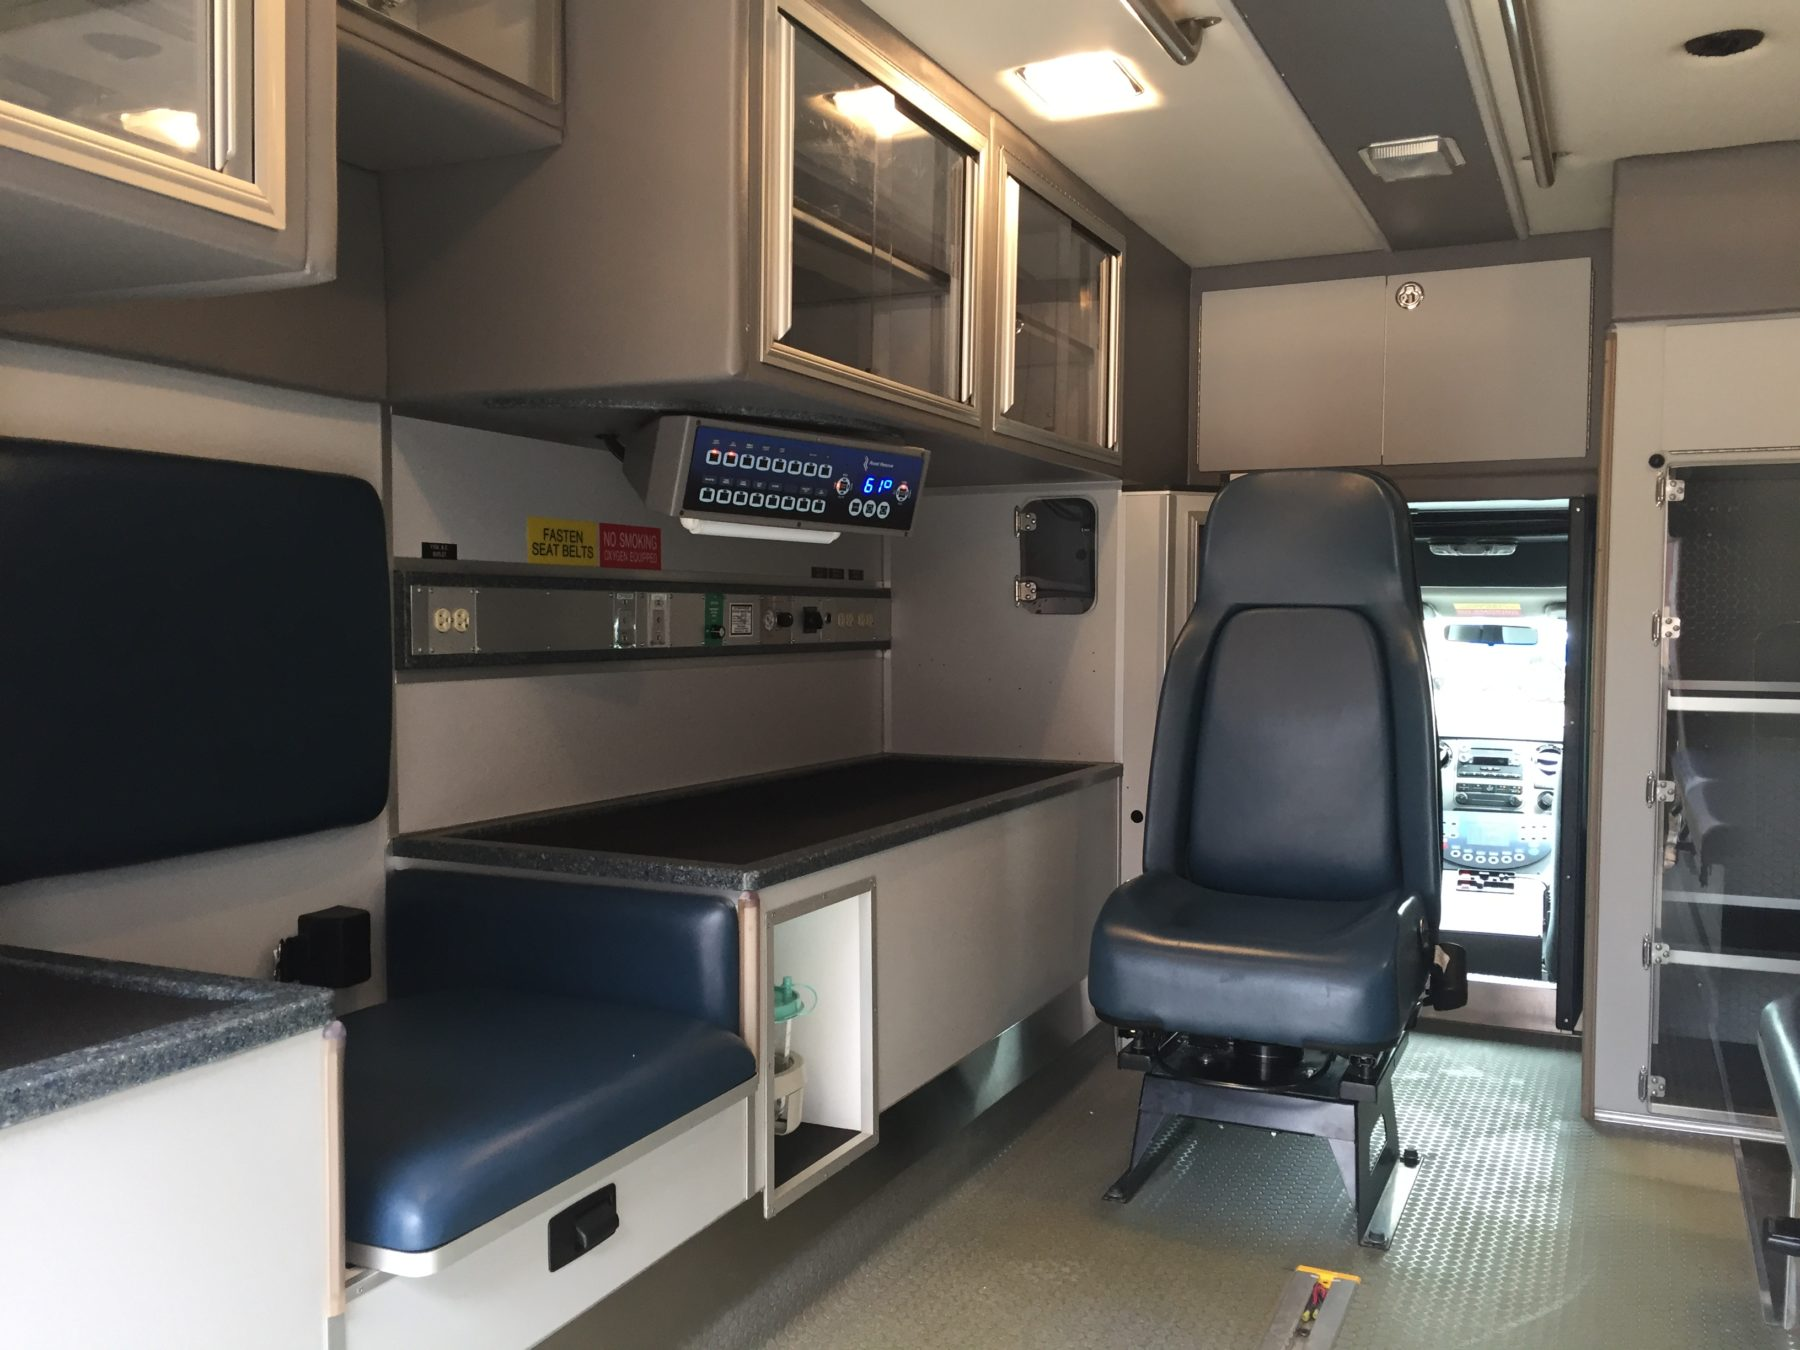 2012 Ford F450 Heavy Duty Ambulance For Sale – Picture 2